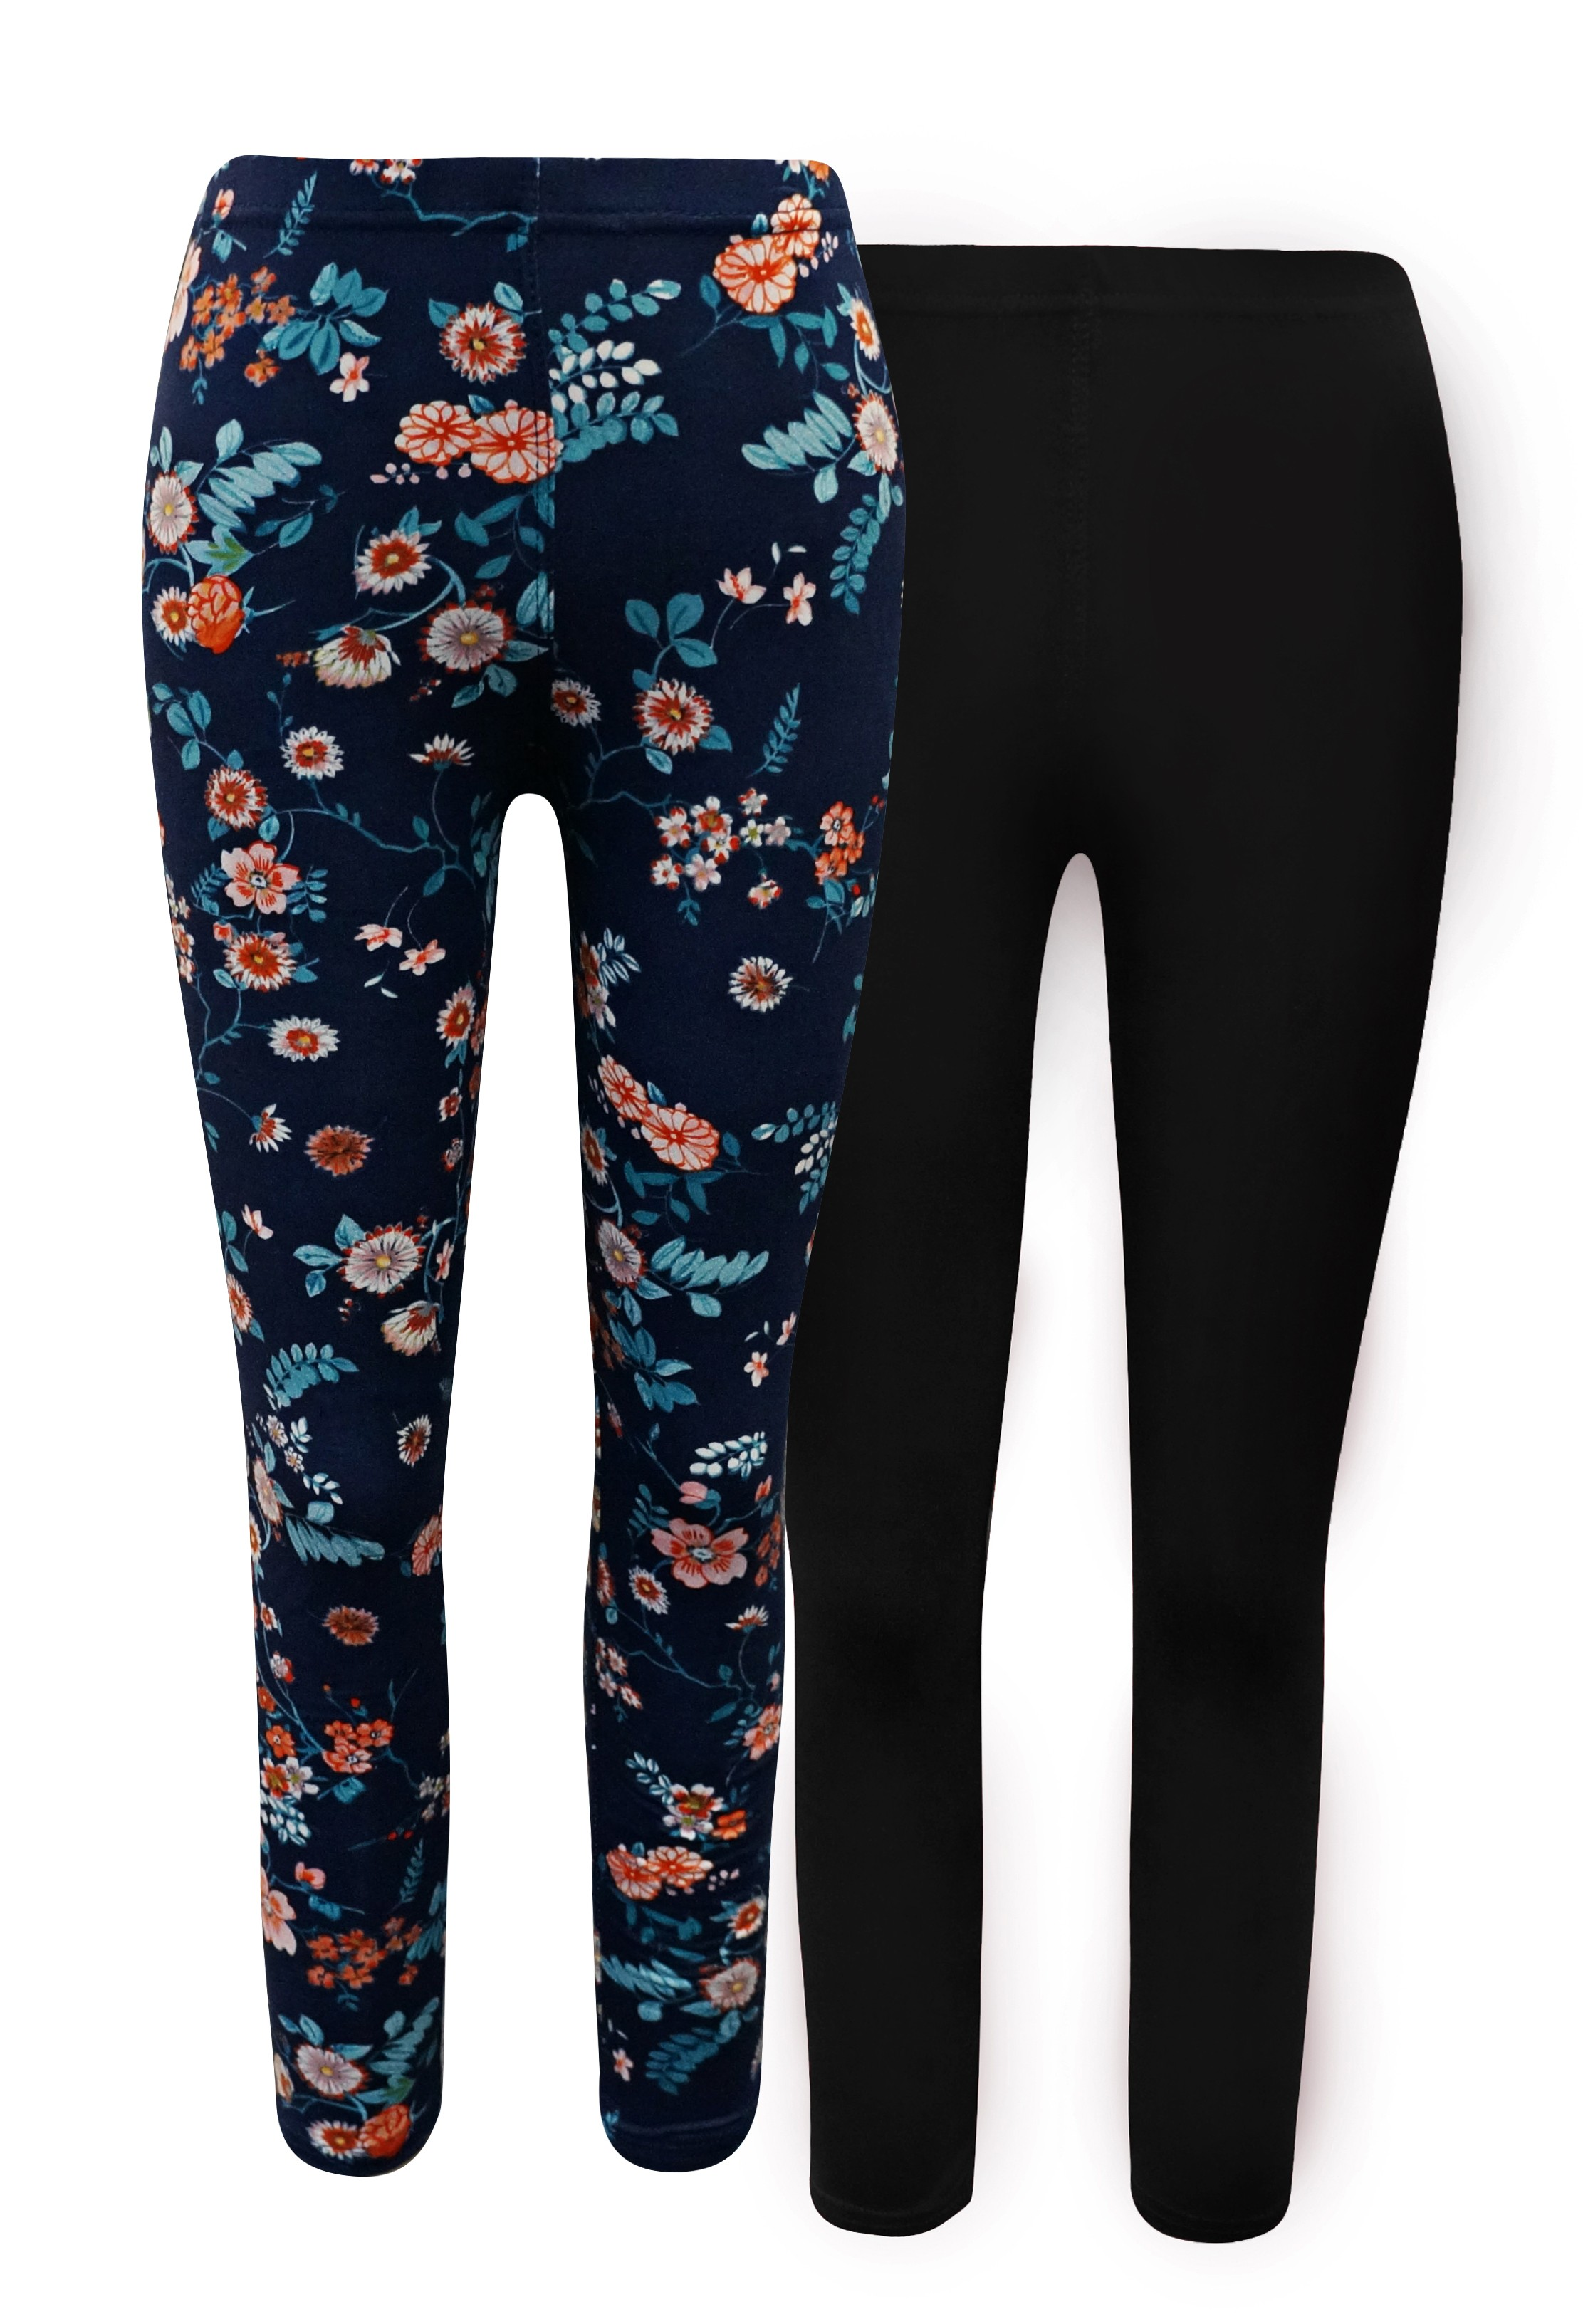 KIDS 2 PACK SOLID BLACK & NAVY/MINT FLORAL PRINT BASIC LEGGING(7/8, 10/12)#X2K8L54-25